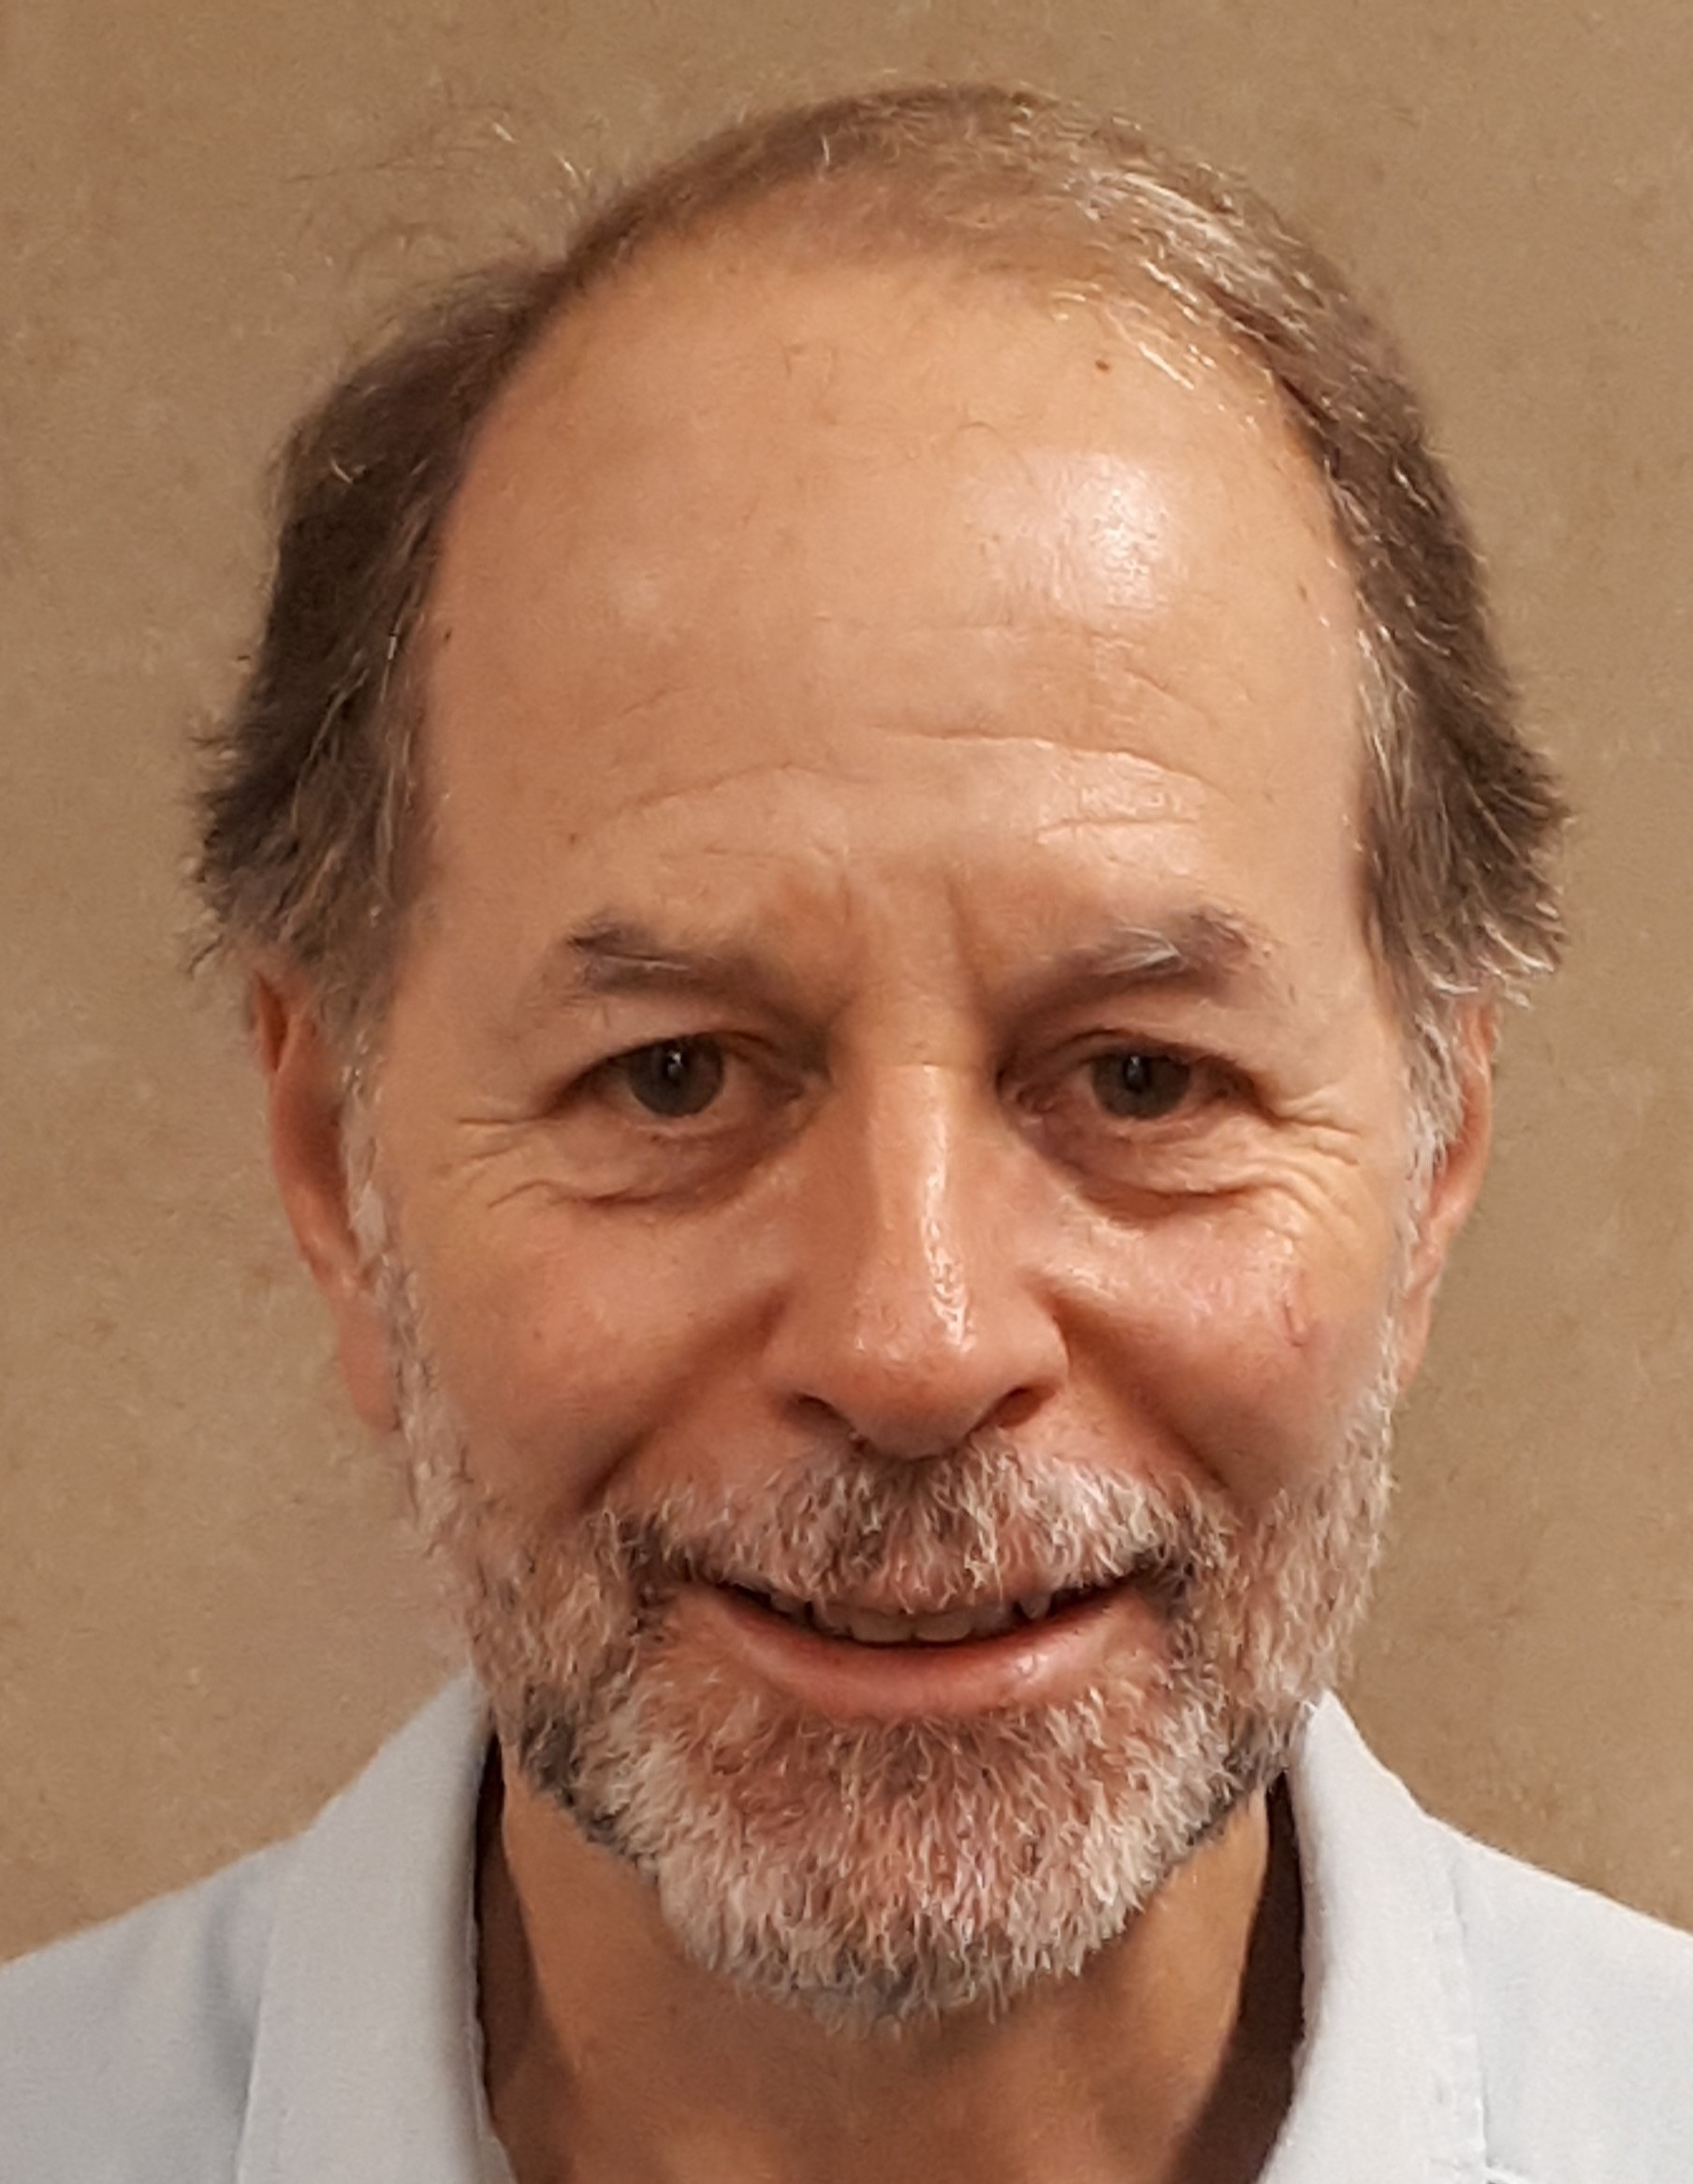 Dr. Jeff Goldberg